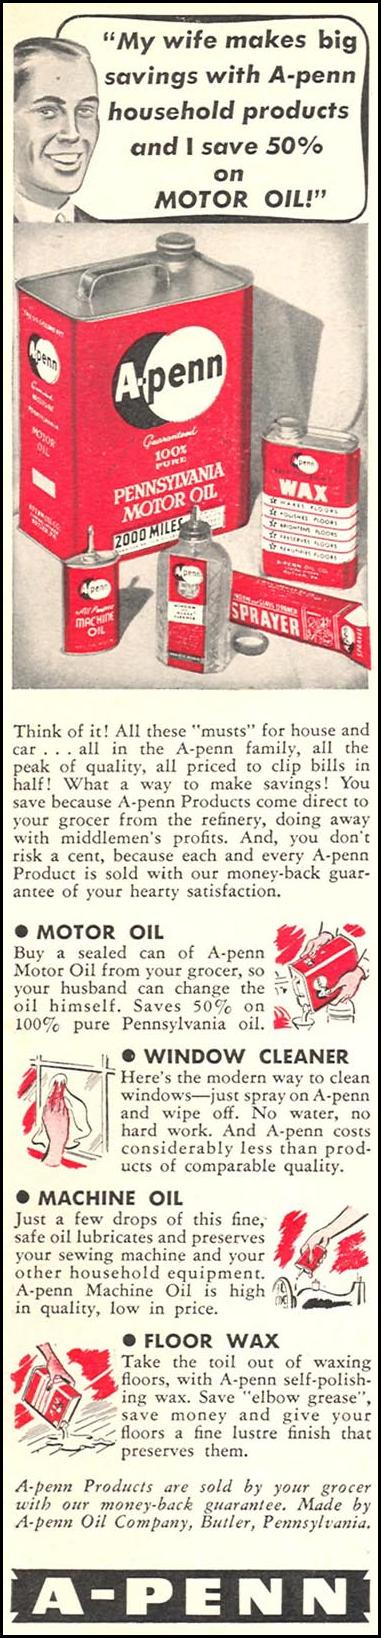 A-PENN HOUSEHOLD PRODUCTS WOMAN'S DAY 05/01/1940 p. 2